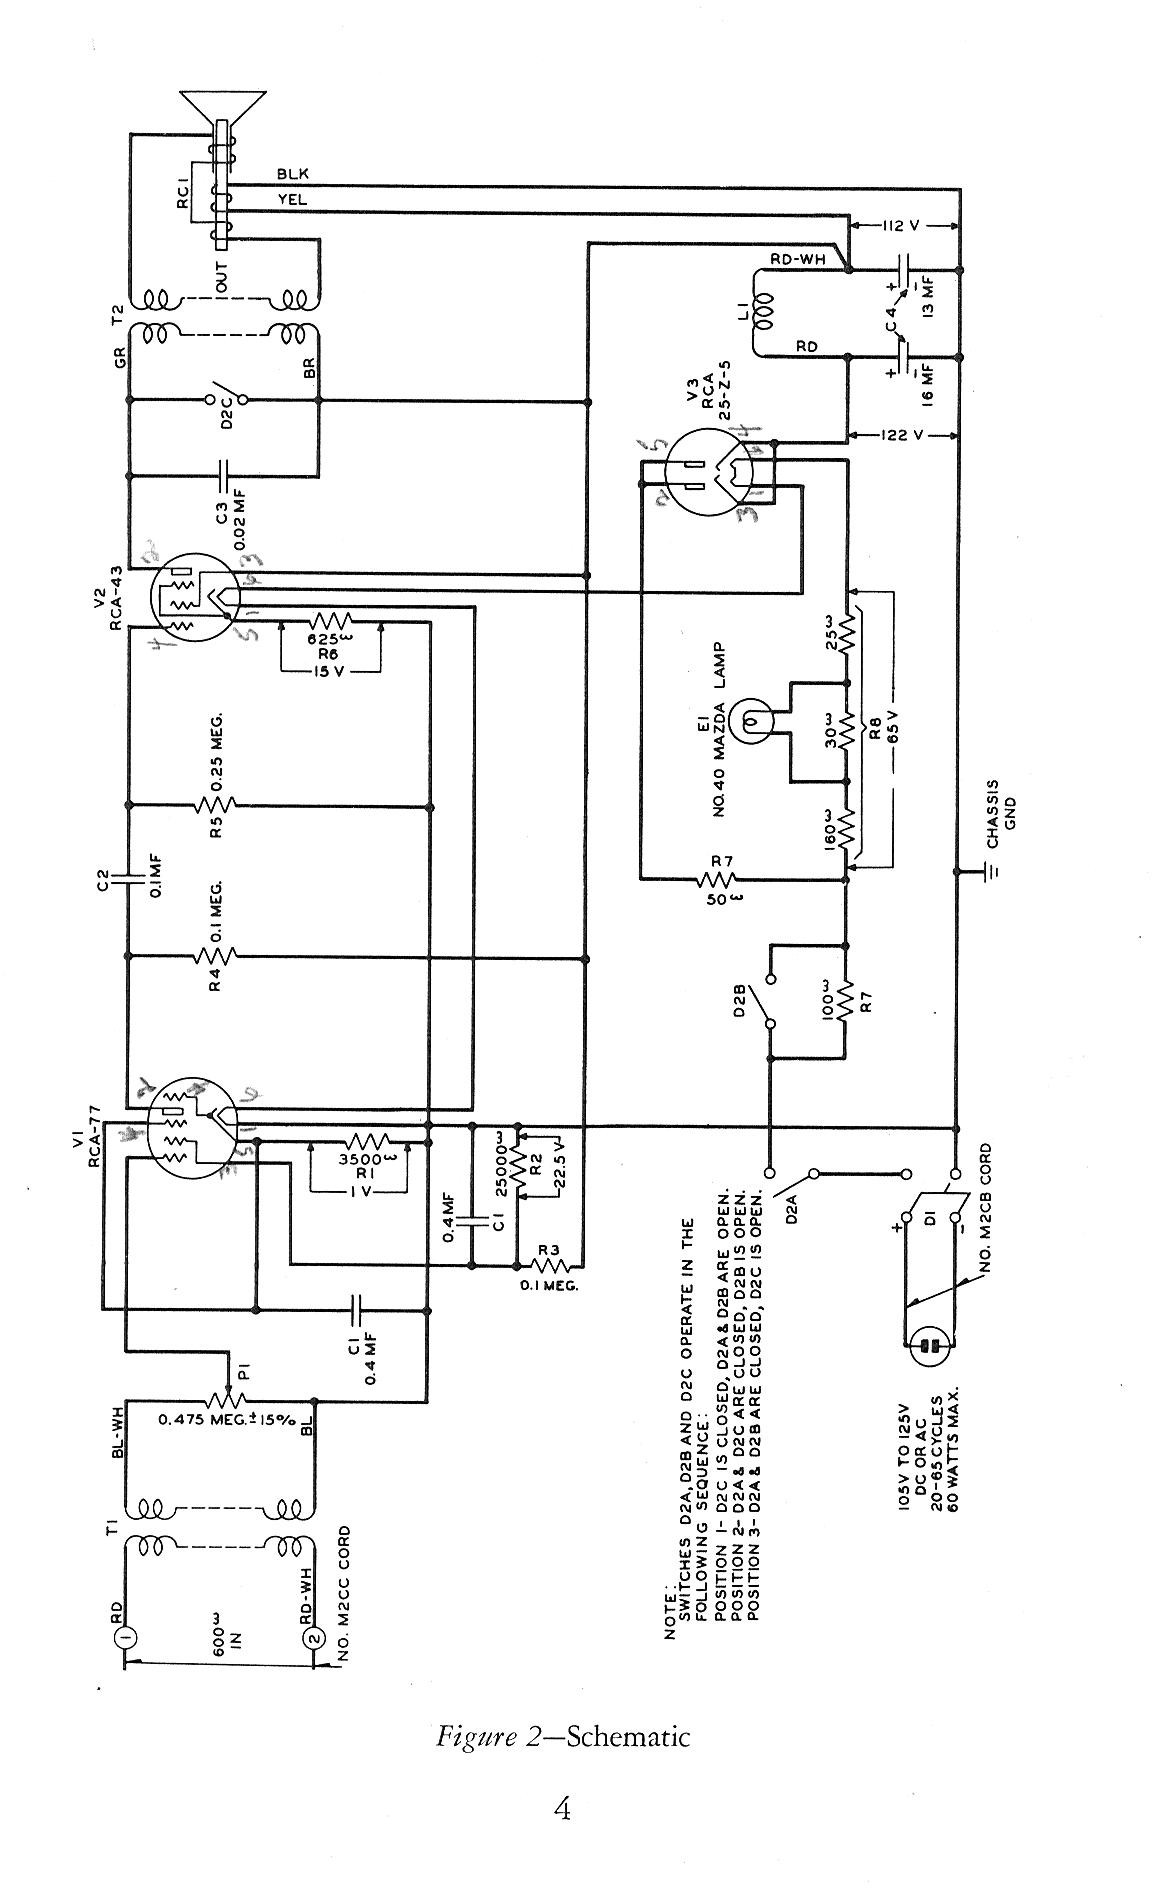 Replacing Phone Jack Wiring Electrical Diagrams White Wire Telephone Diagram Old System Auto U2022 Cable